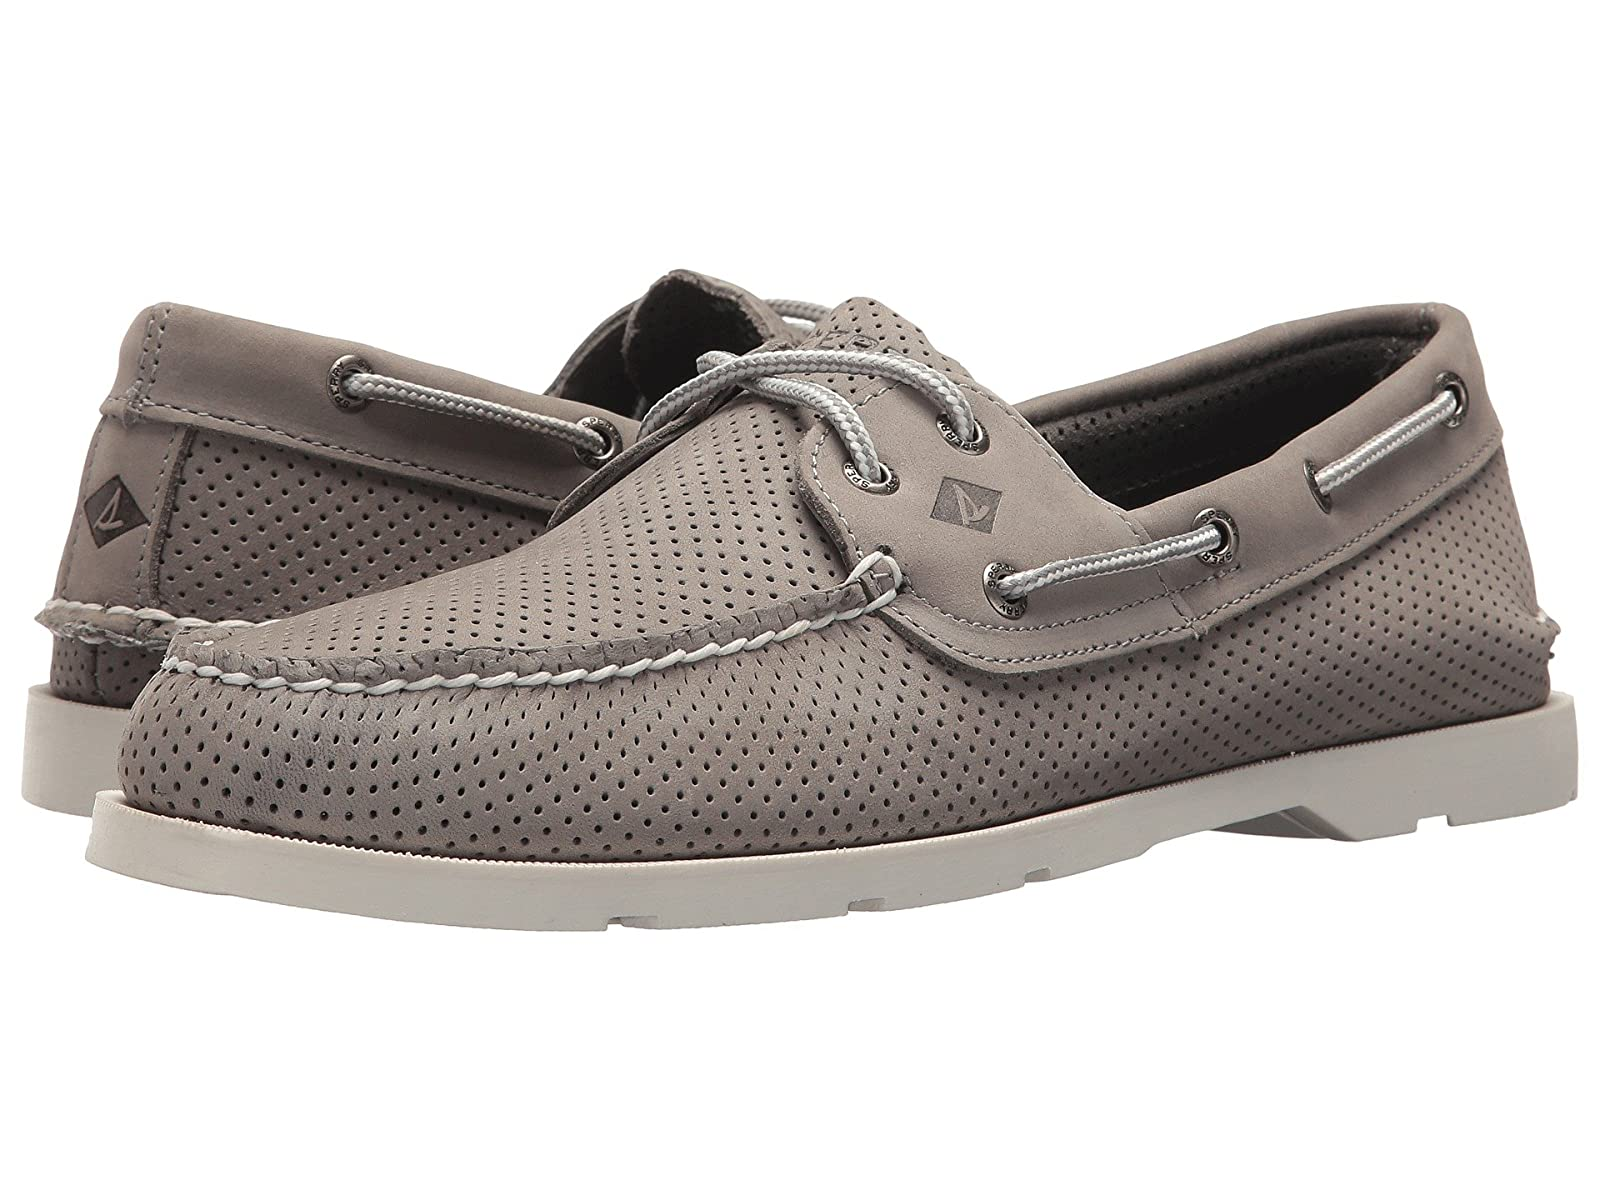 Sperry Leeward 2-Eye PerfCheap and distinctive eye-catching shoes